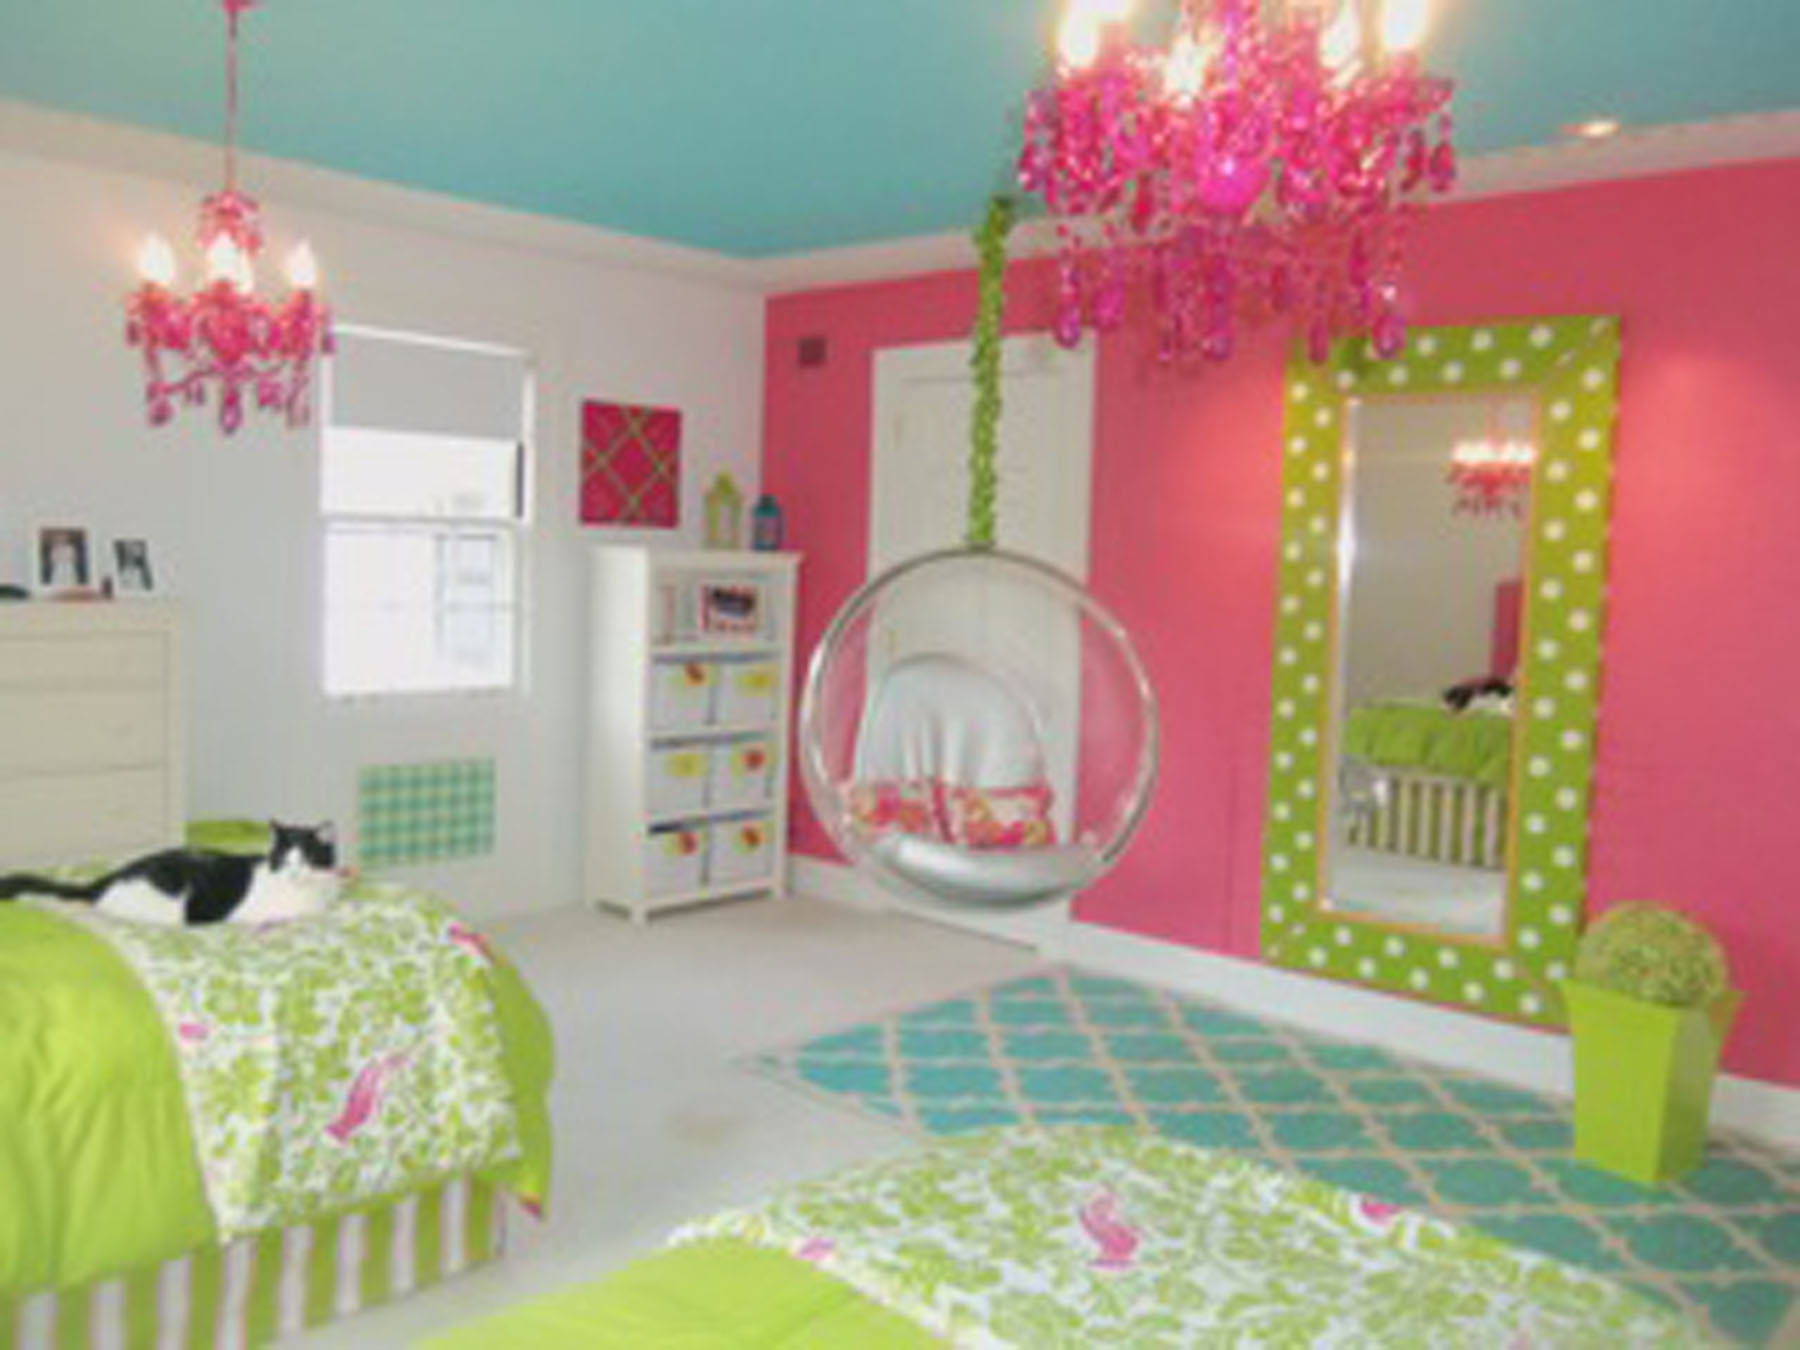 Combine Pink Painted Wall and Blue Ceiling for Cute Room Ideas for Teens with Hanging Bubble Chair